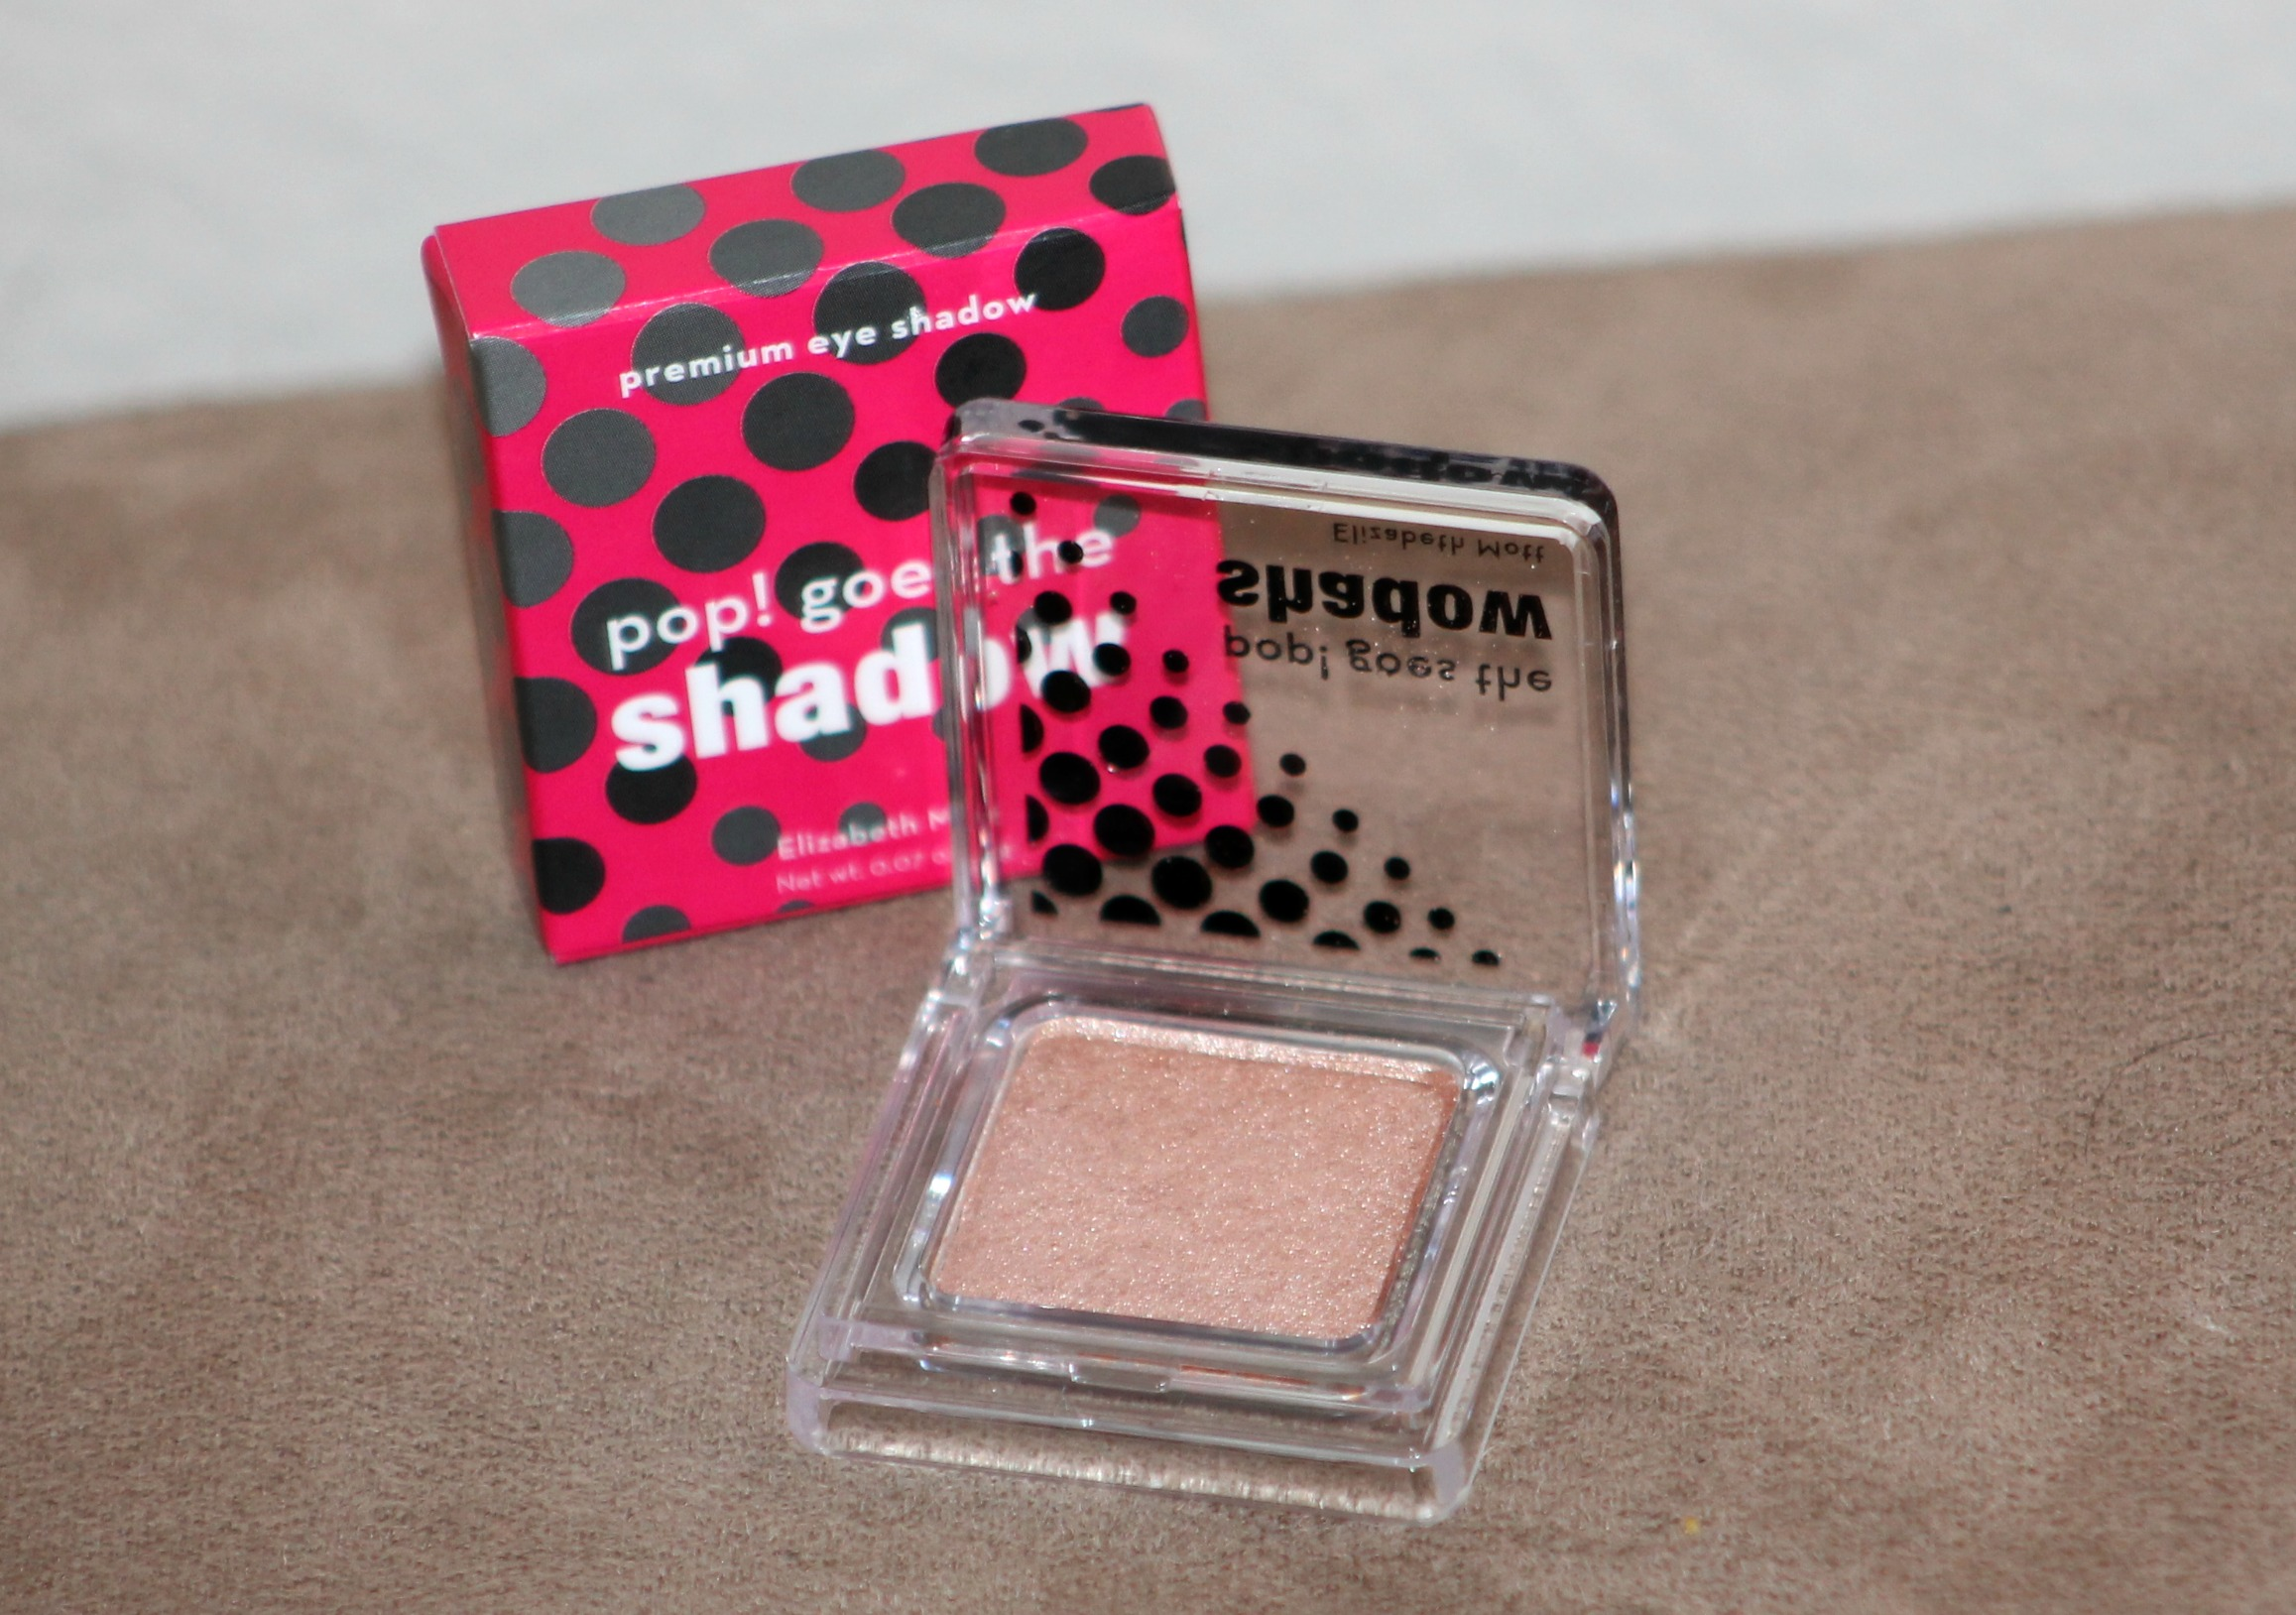 Pop! Goes the Shadow in Champagne Ipsy Glam Bag April 2014